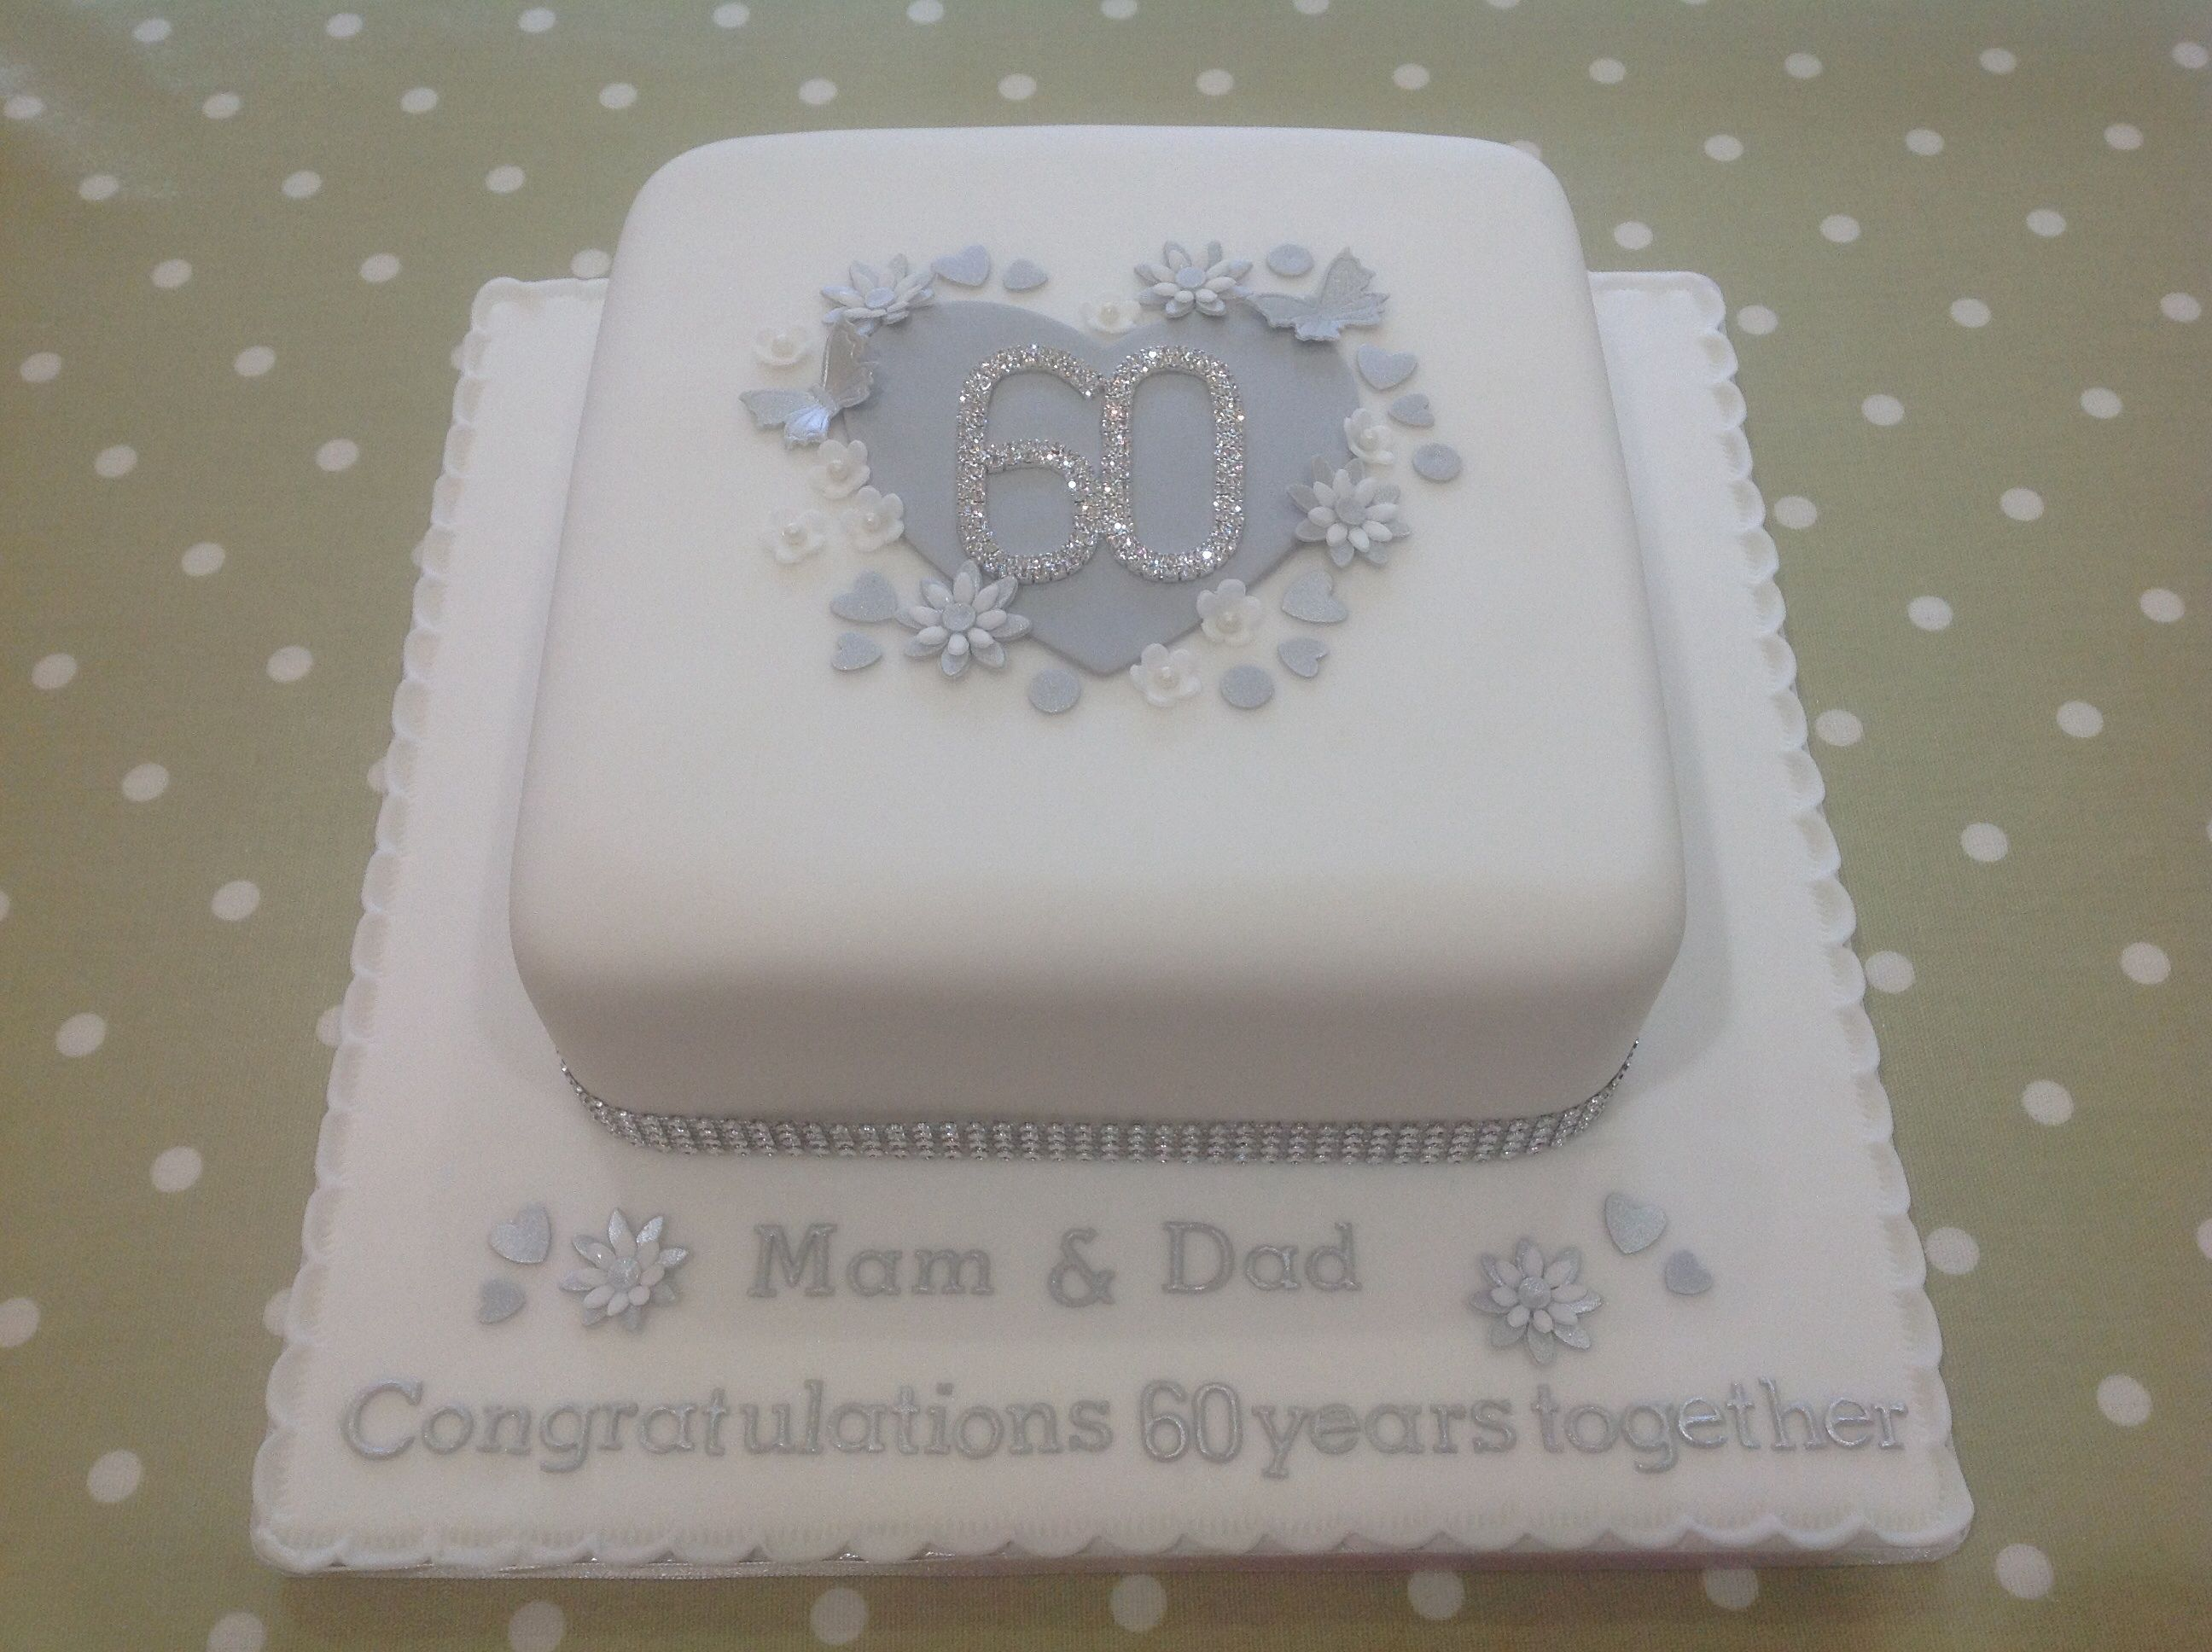 Cake Pic For Wedding Anniversary : diamond wedding anniversary cakes - Google Search bolos ...